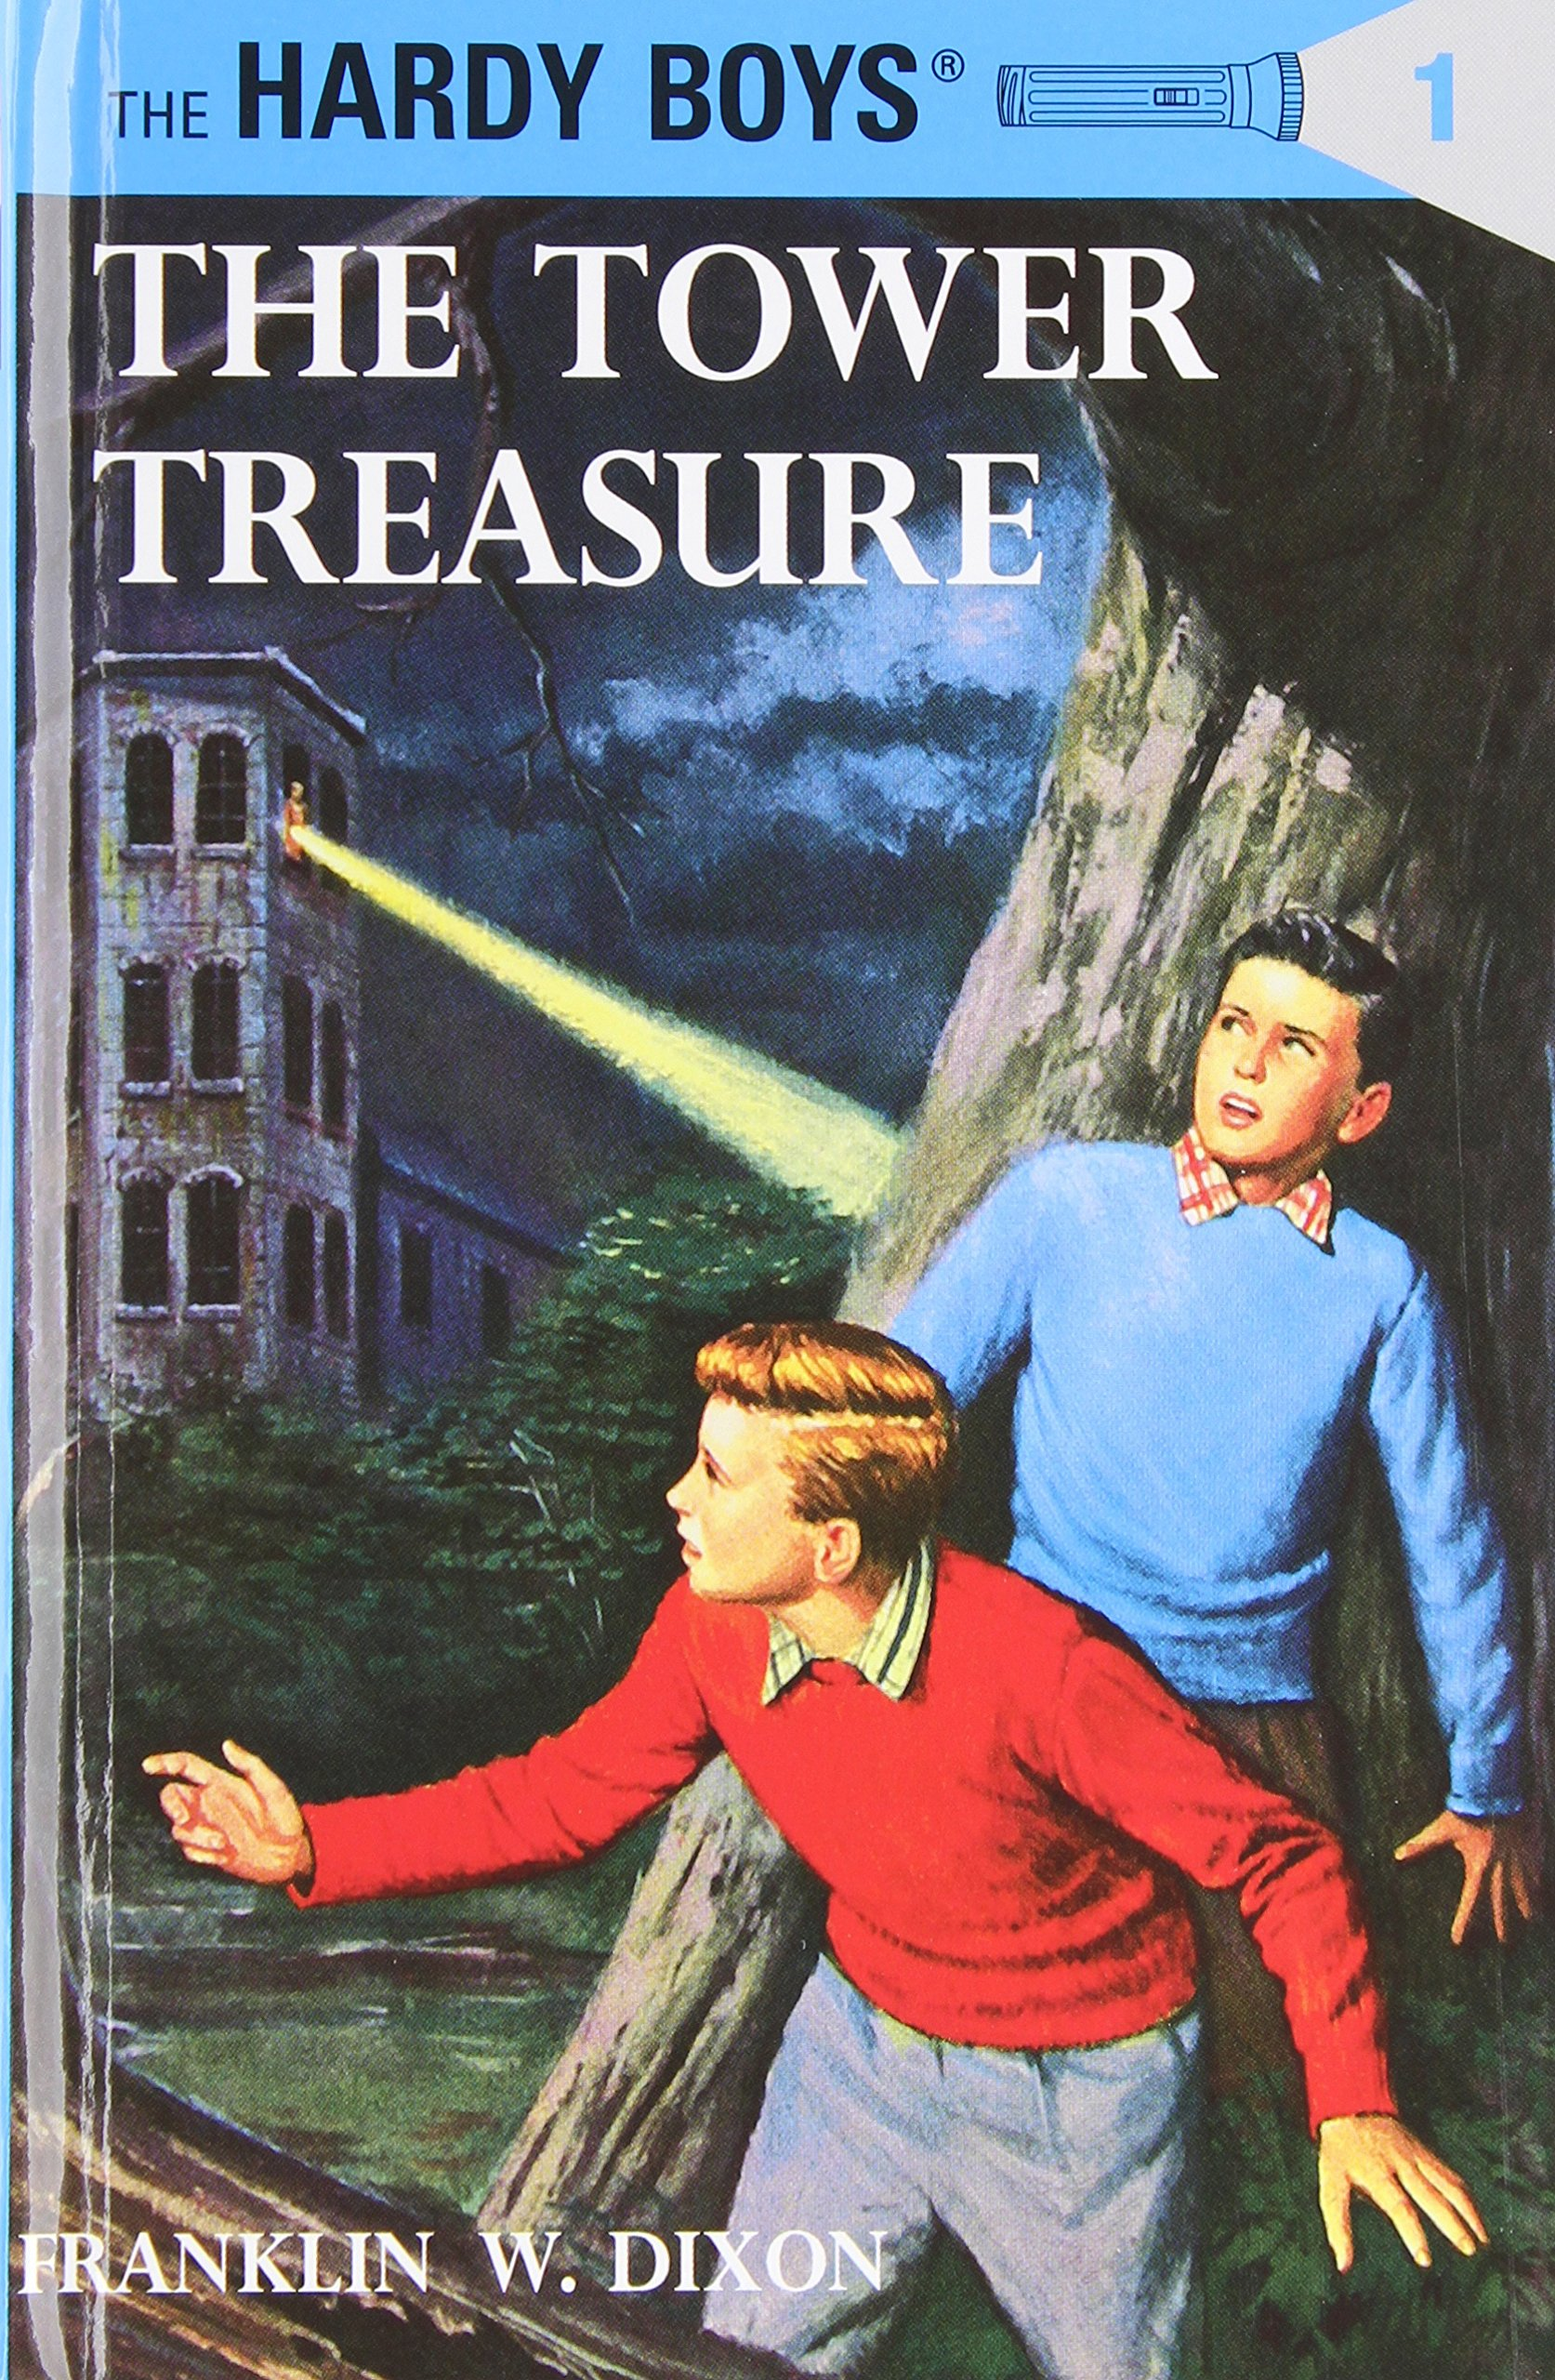 Image result for the hardy boys book 1